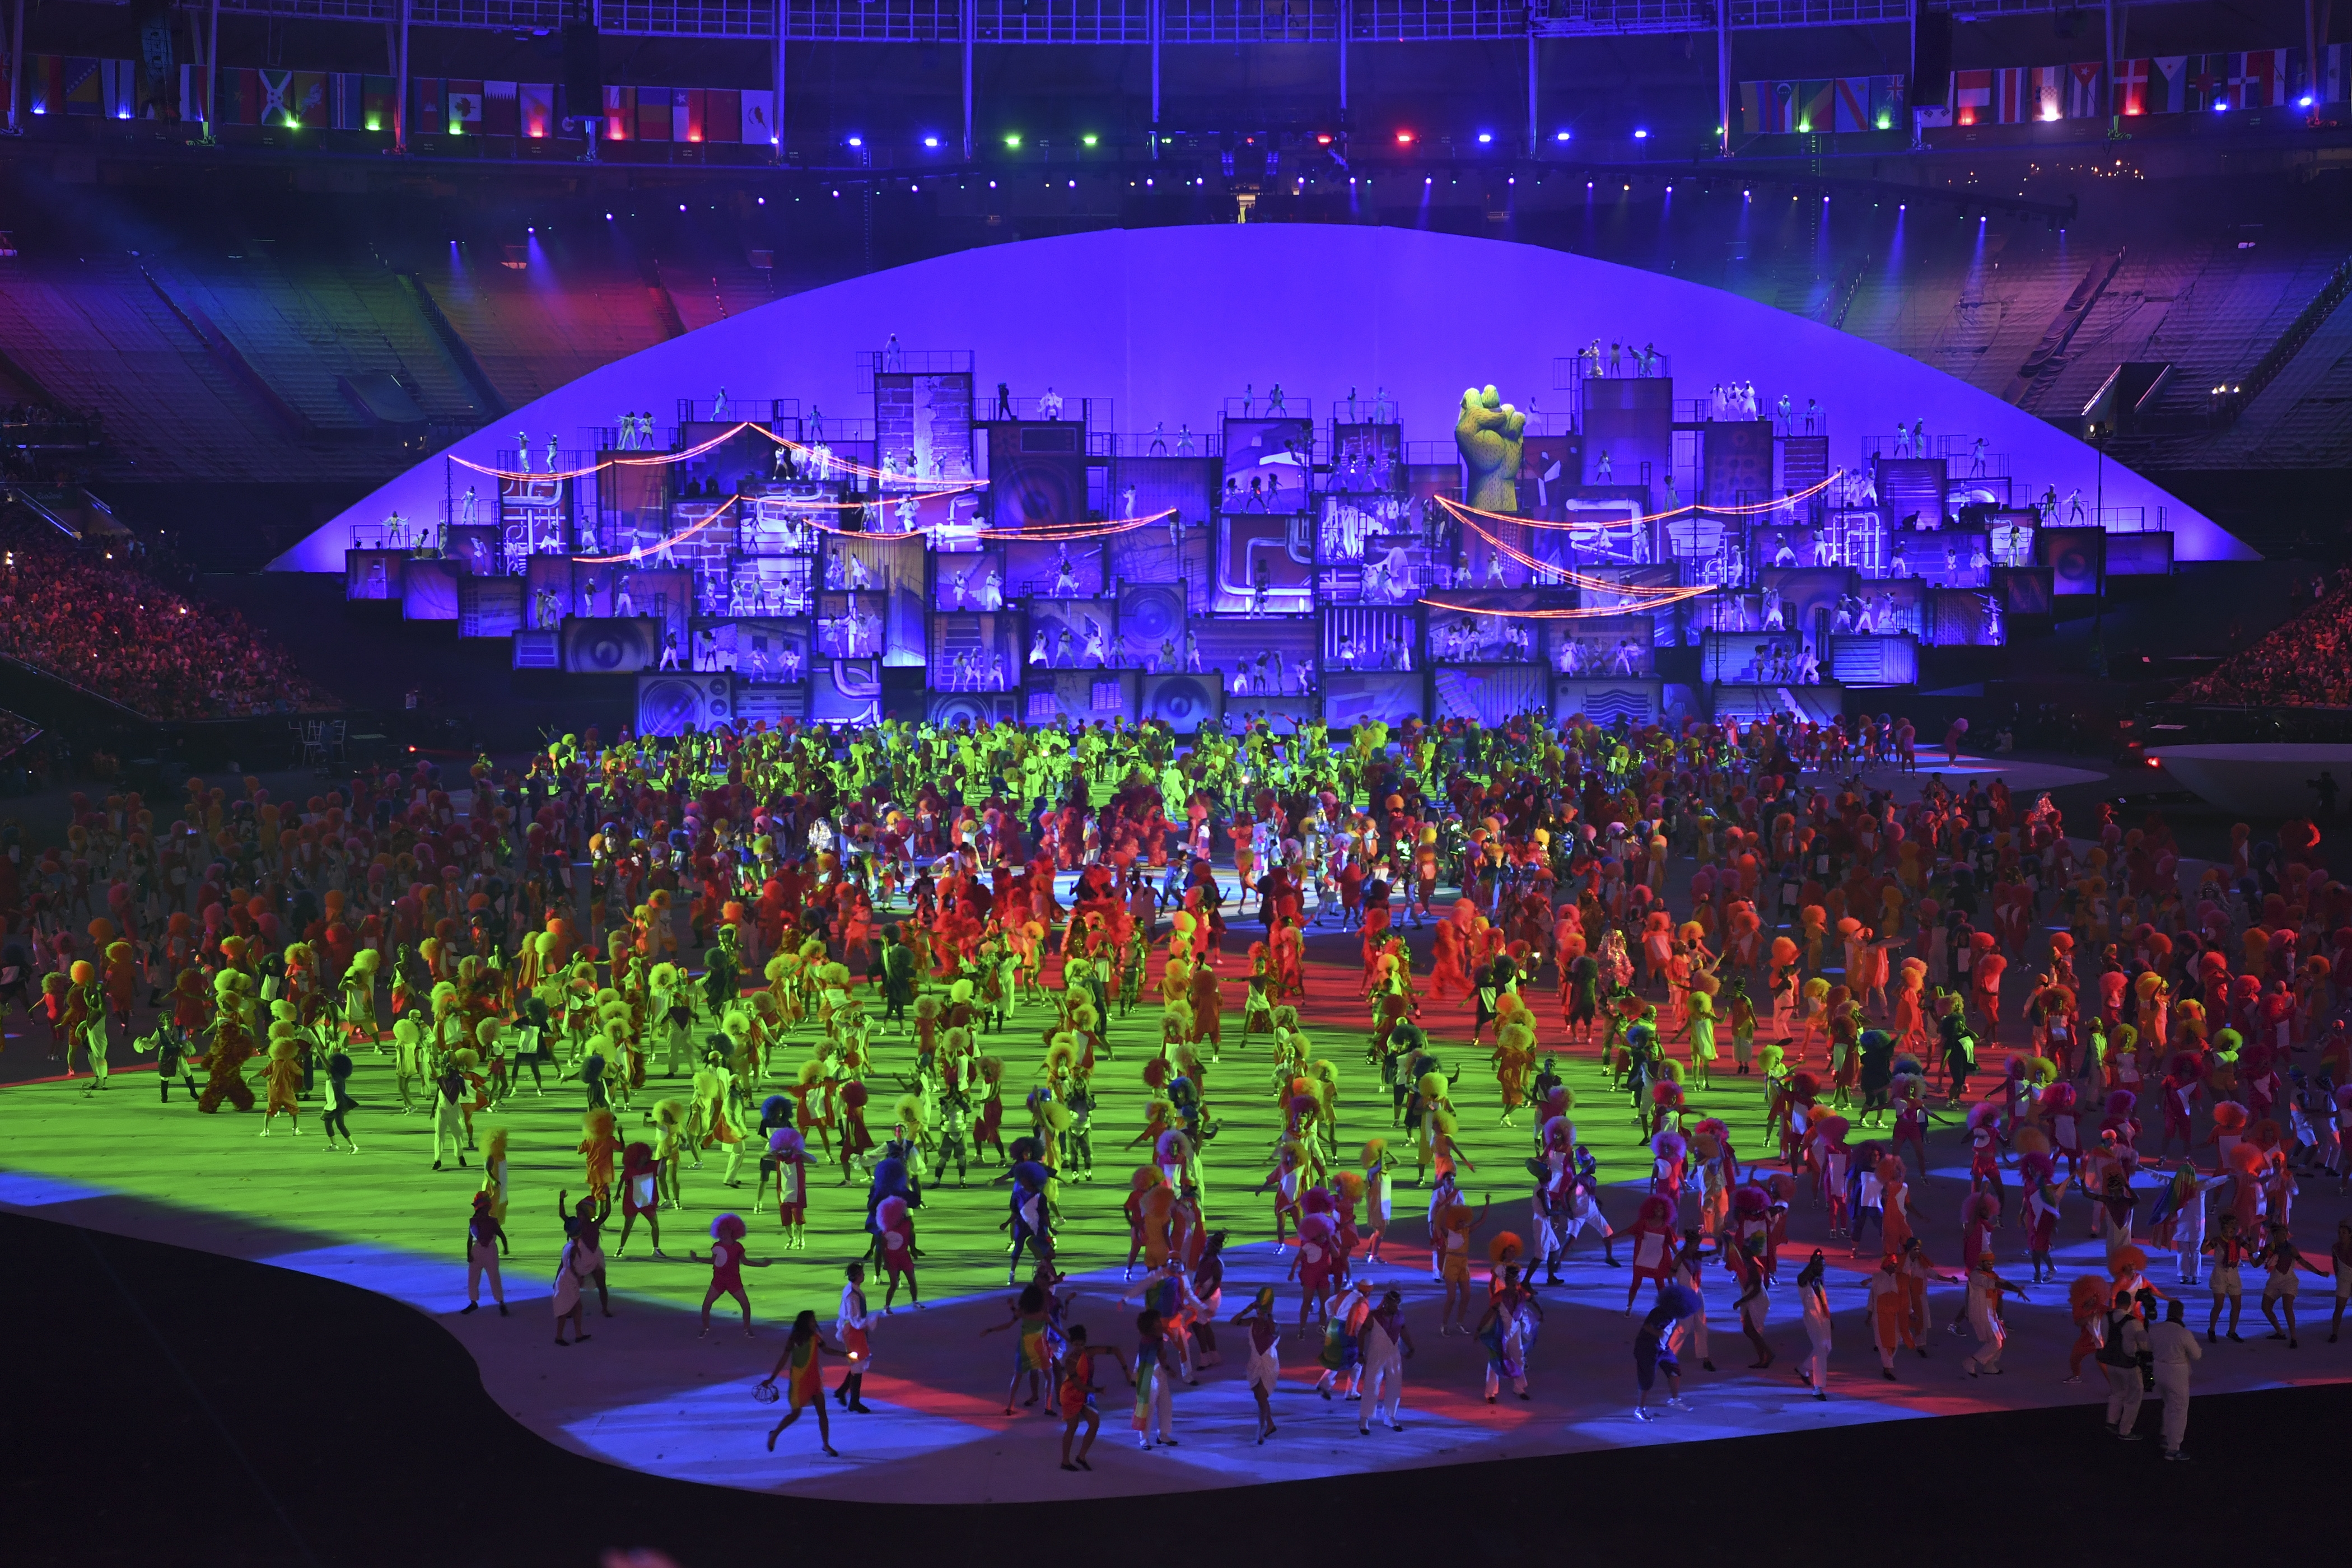 Brazilian culture was front and center in Maracana Stadium during the Opening Ceremonies on Friday night at the Summer Olympics in Rio de Janeiro.